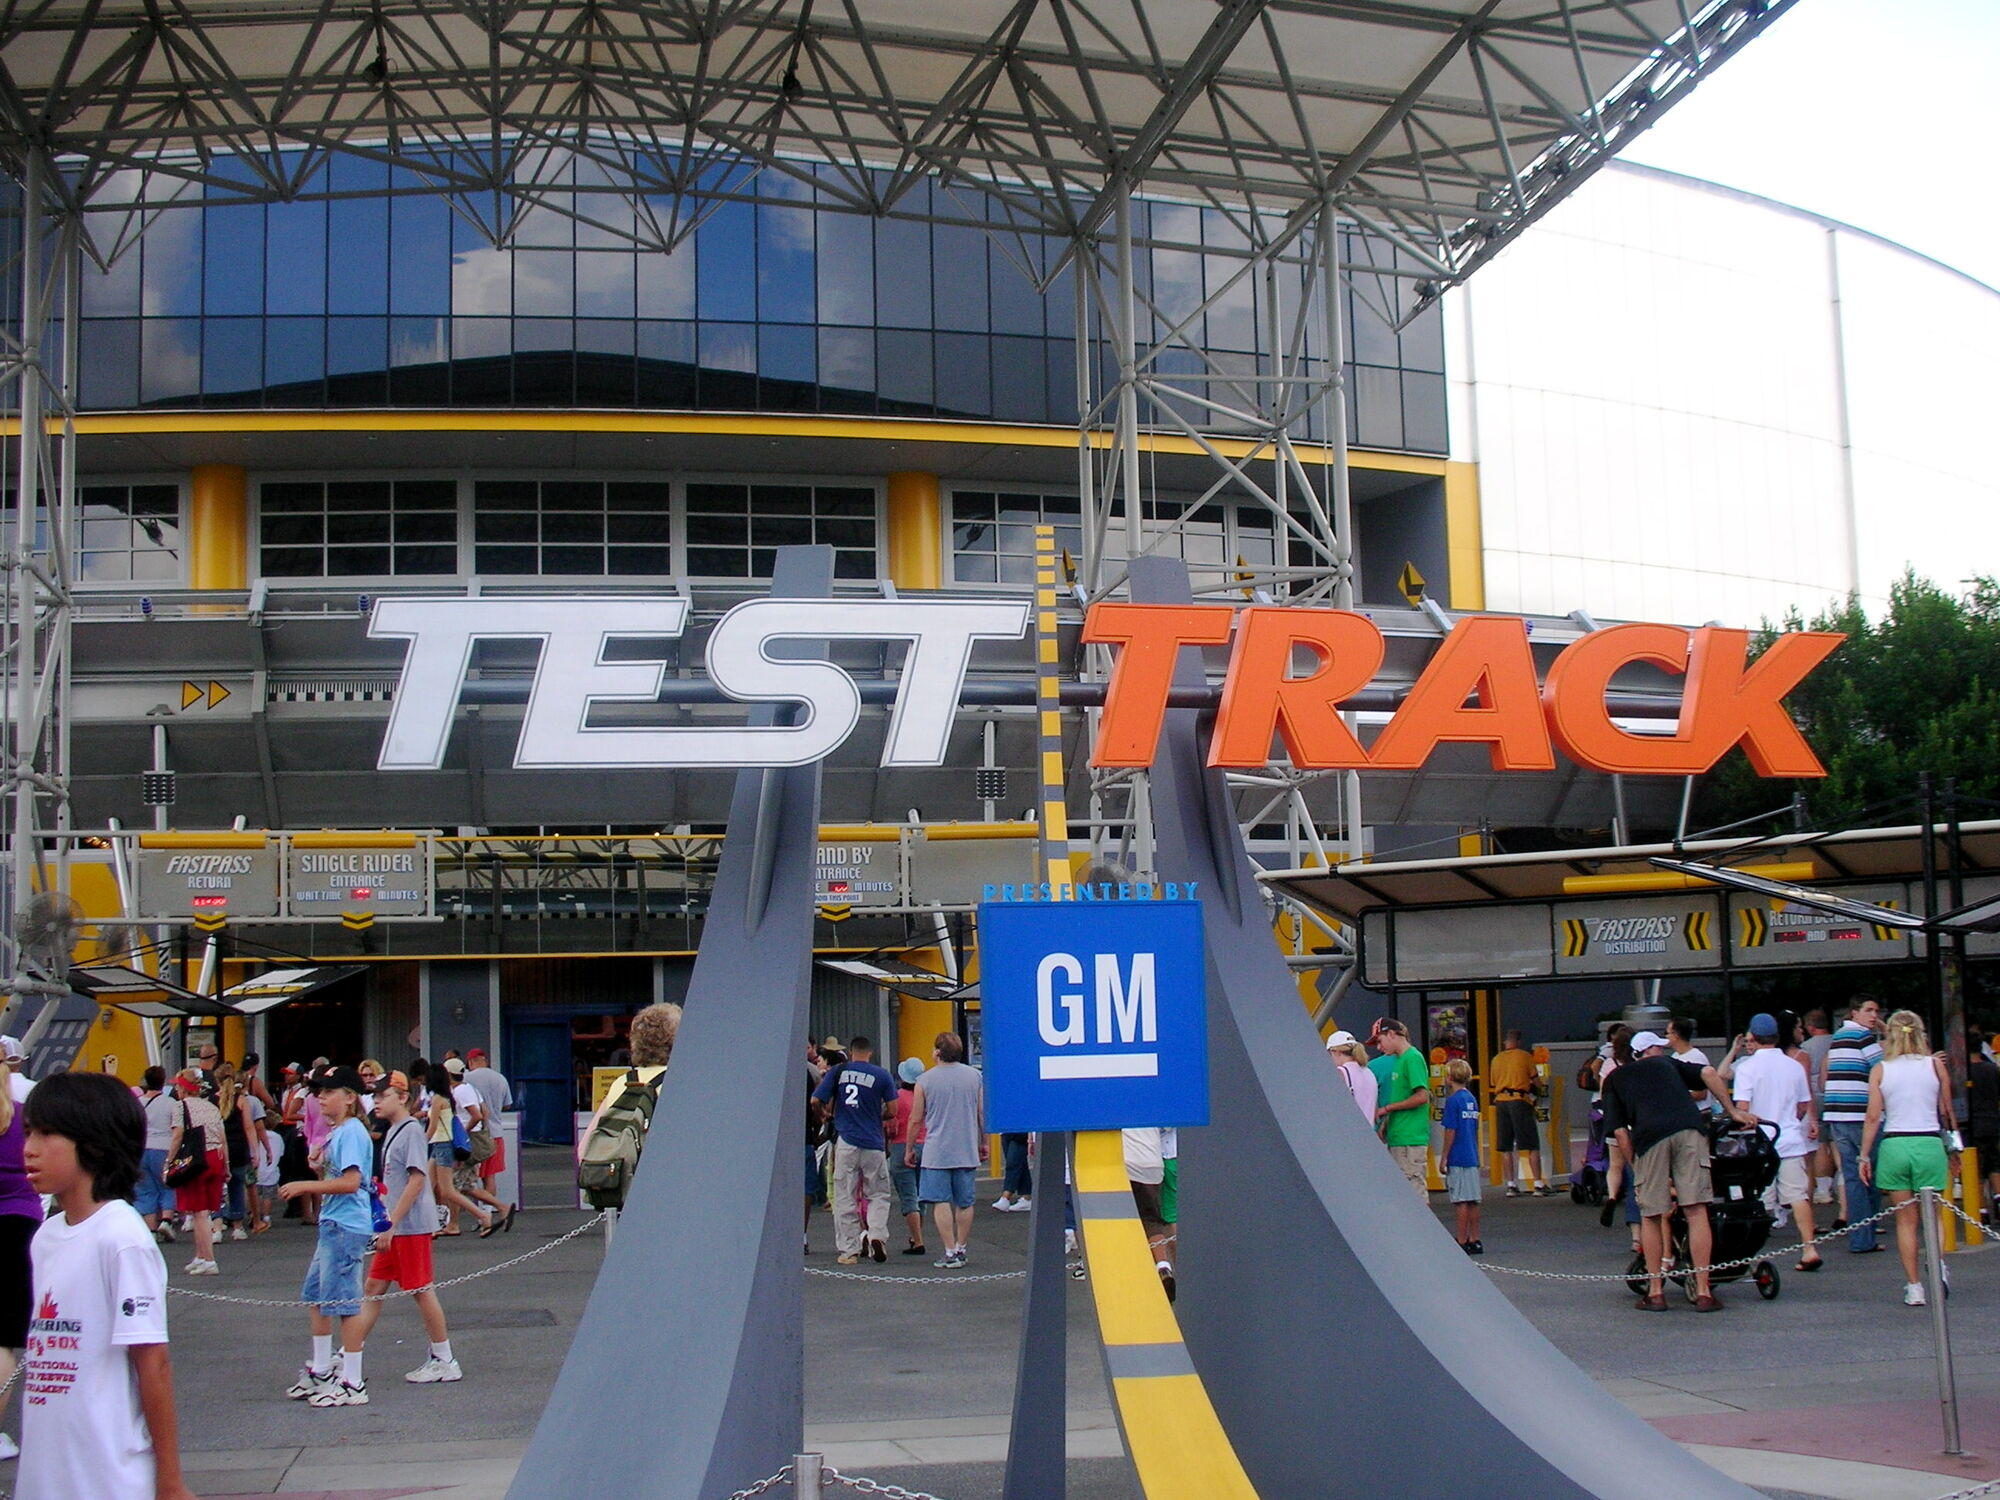 Test Track Disney Wiki Fandom Powered By Wikia